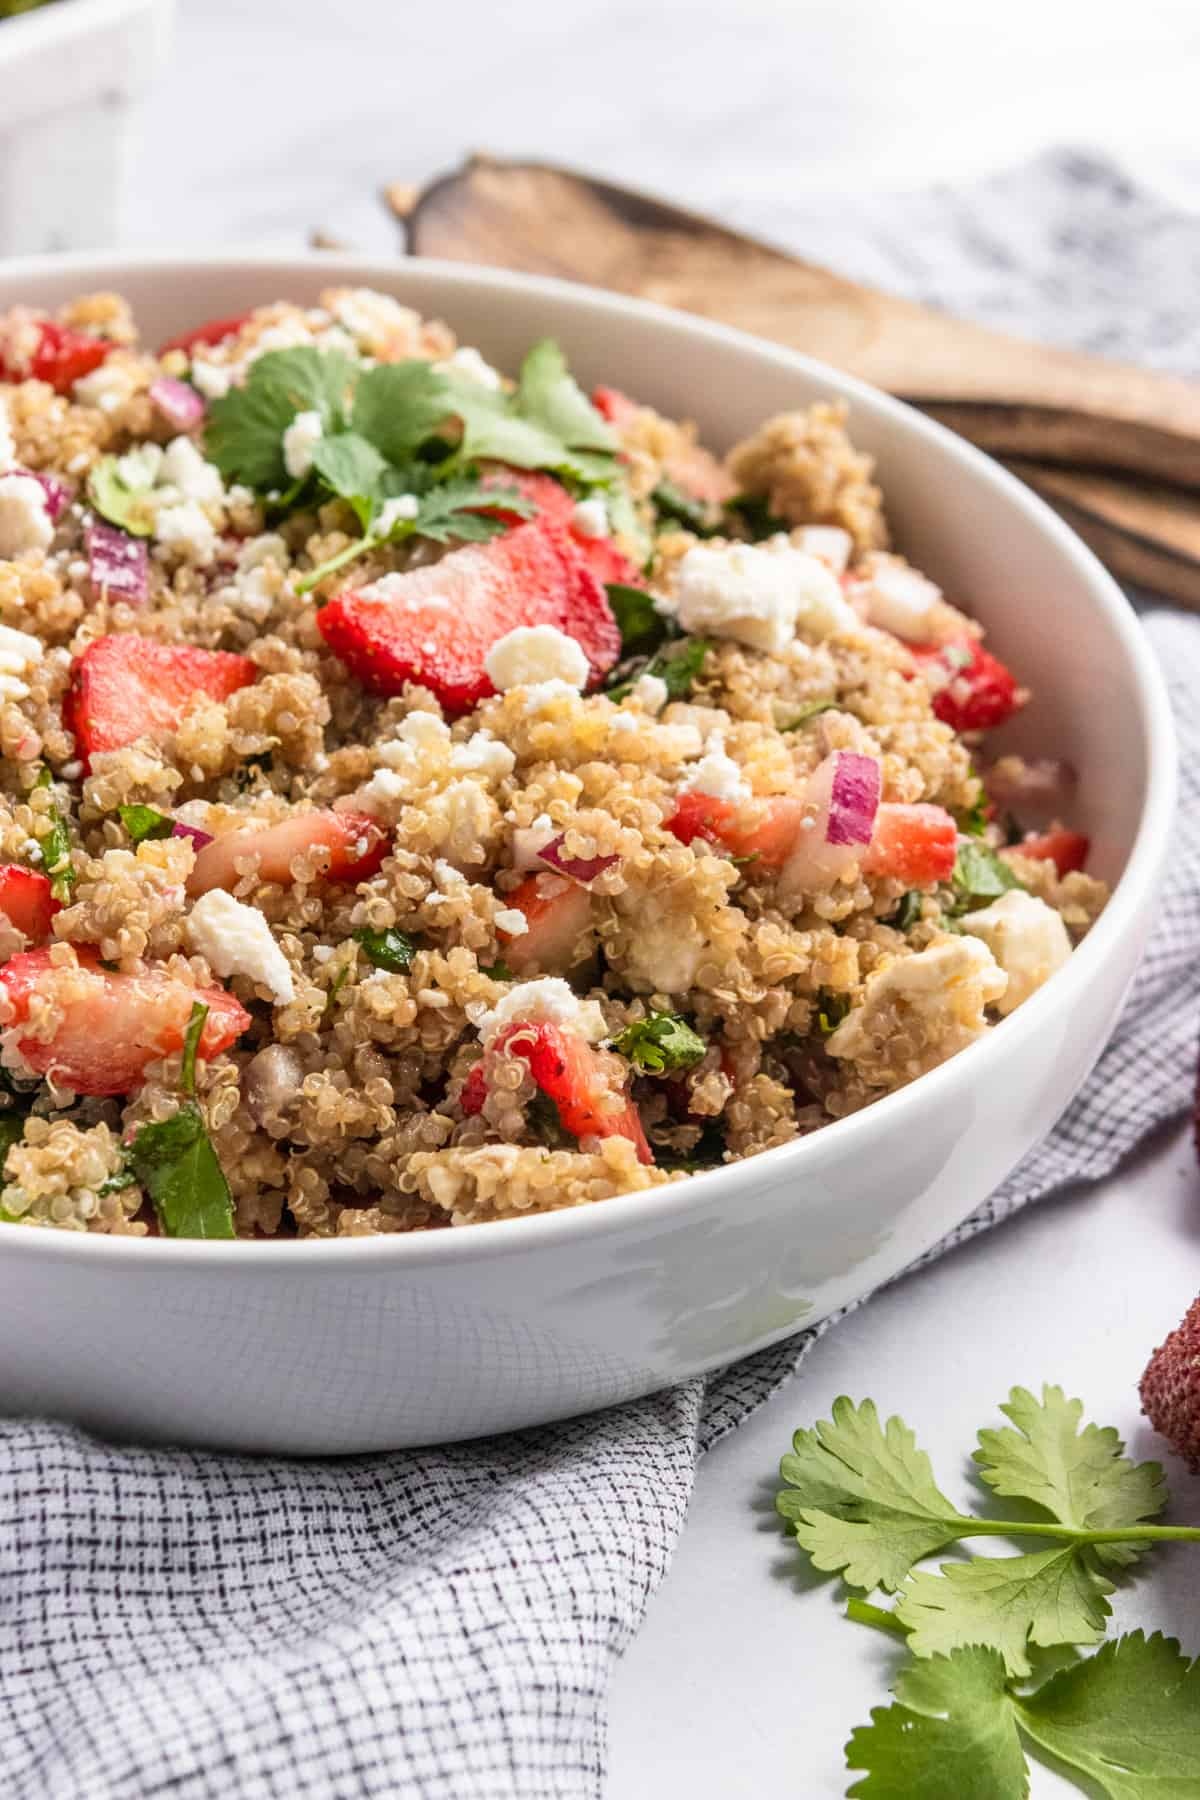 Strawberry summer quinoa salad in white bowl with serving utensils.